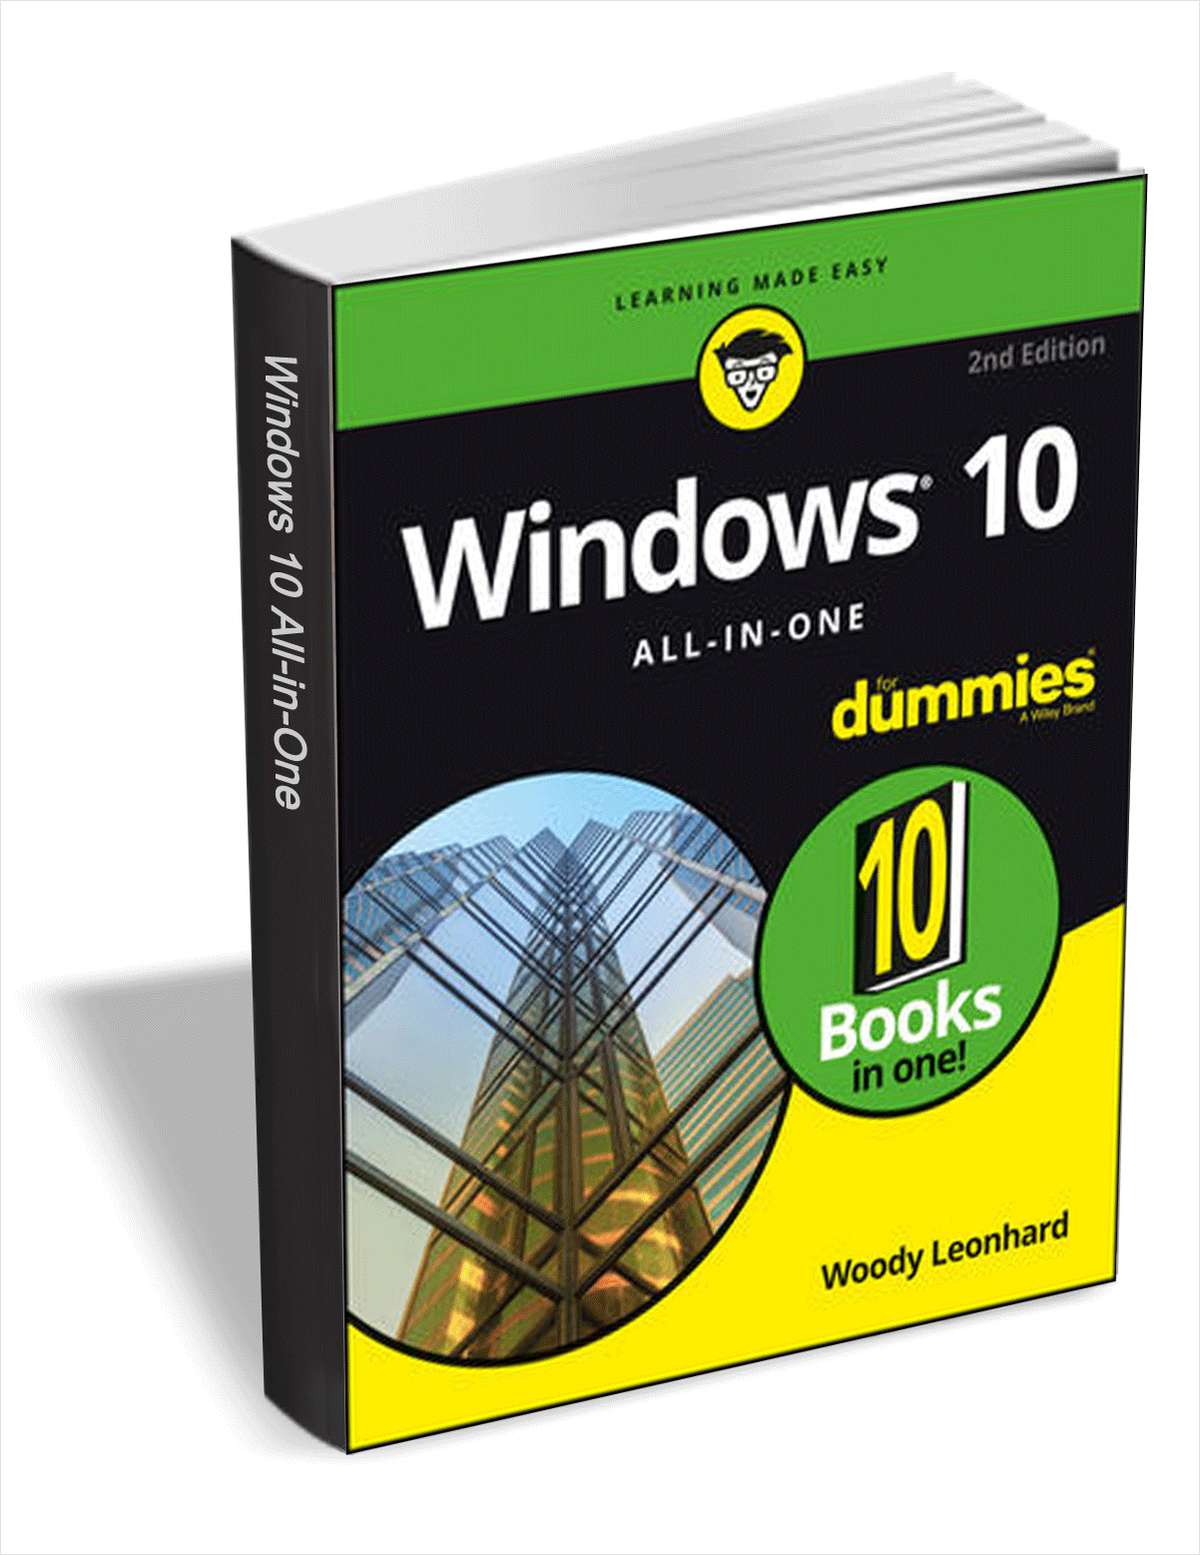 Windows 10 All-In-One For Dummies, 2nd Edition ($19 Value) FREE For a Limited Time